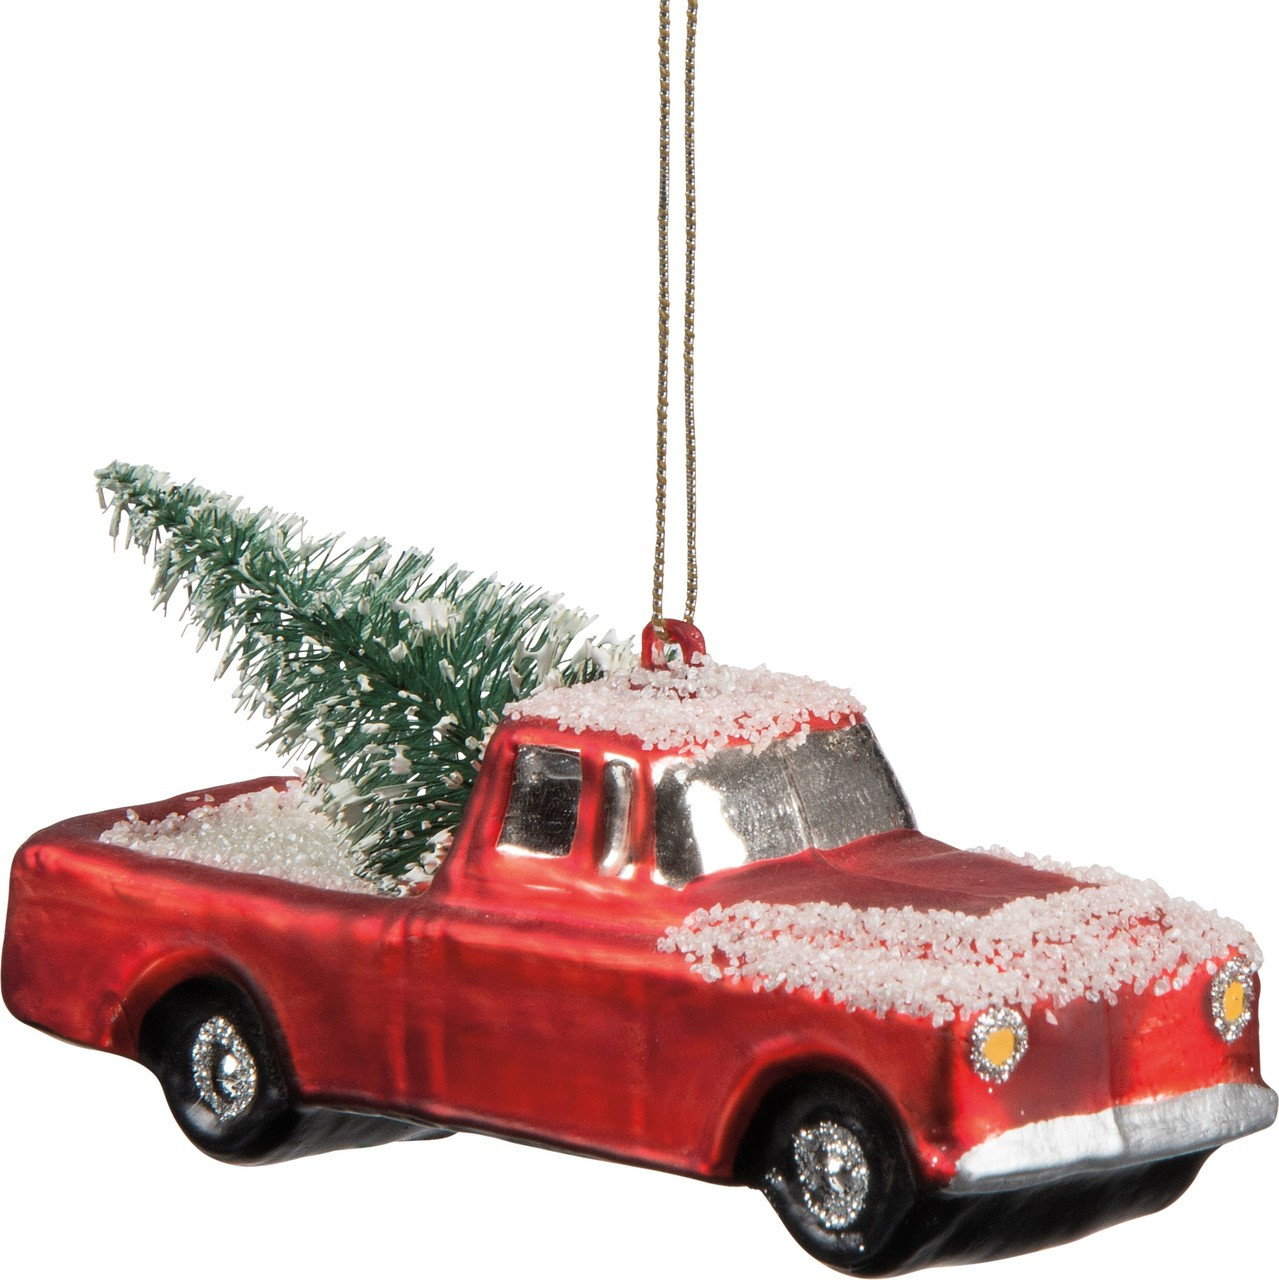 Vintage Red Truck Christmas Decor.Vintage Red Pickup Truck Glass Christmas Ornament